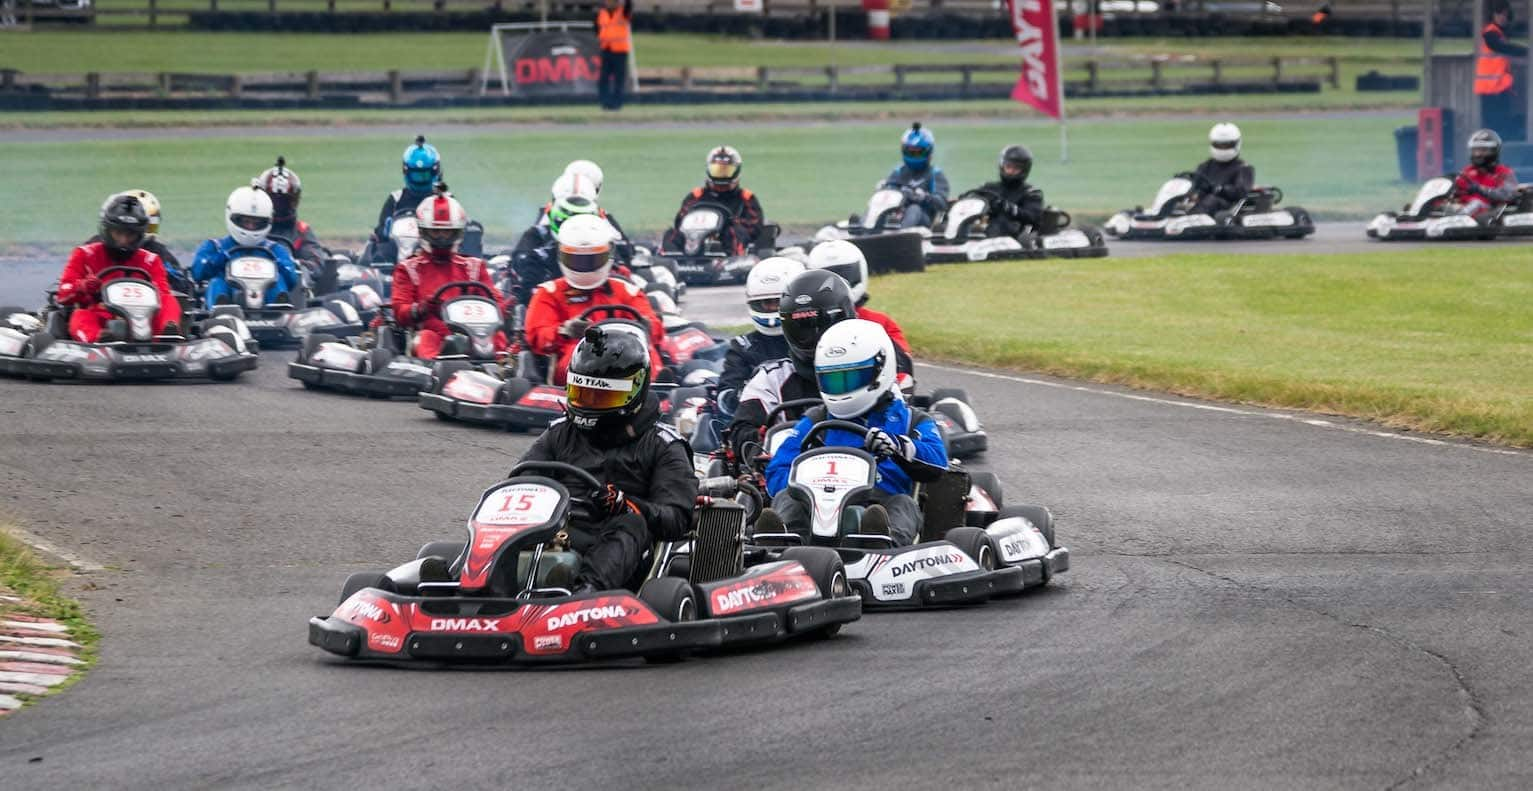 COUNTDOWN TO WHILTON FOR ROUND 7